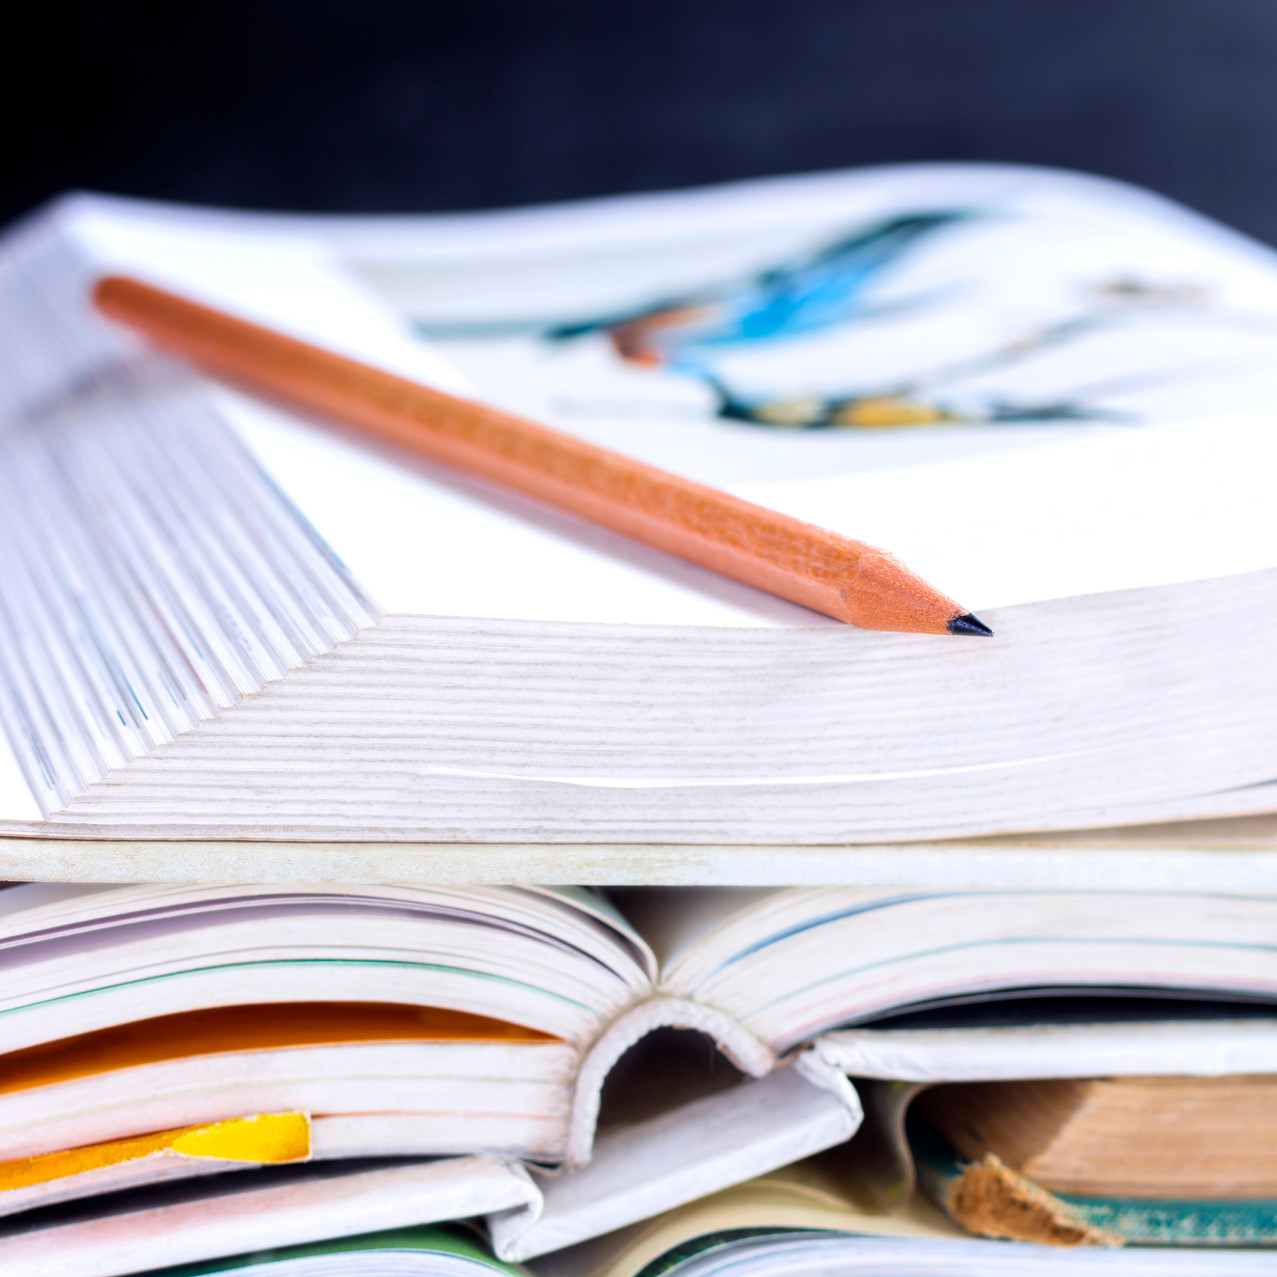 blurry photo of open textbook stacked on top of other textbooks with a pencil